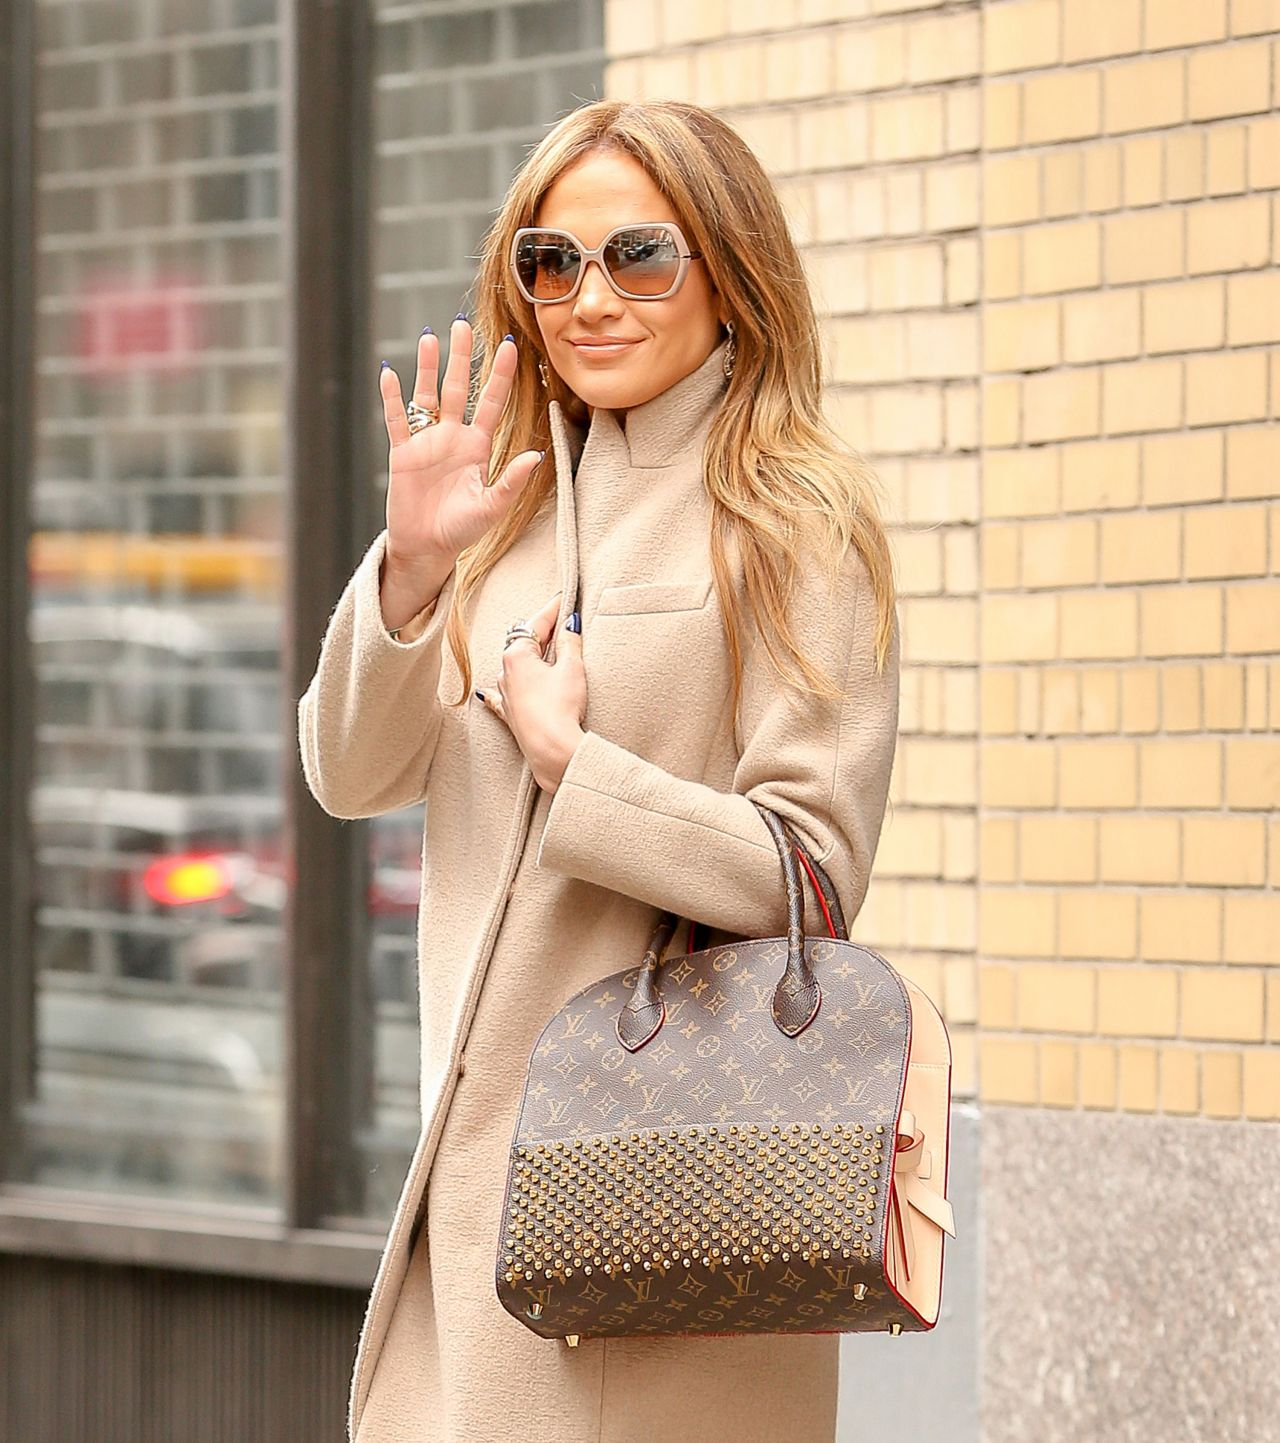 Jennifer Lopez is Stylish - Leaving an Office Building in New York City, January 2015